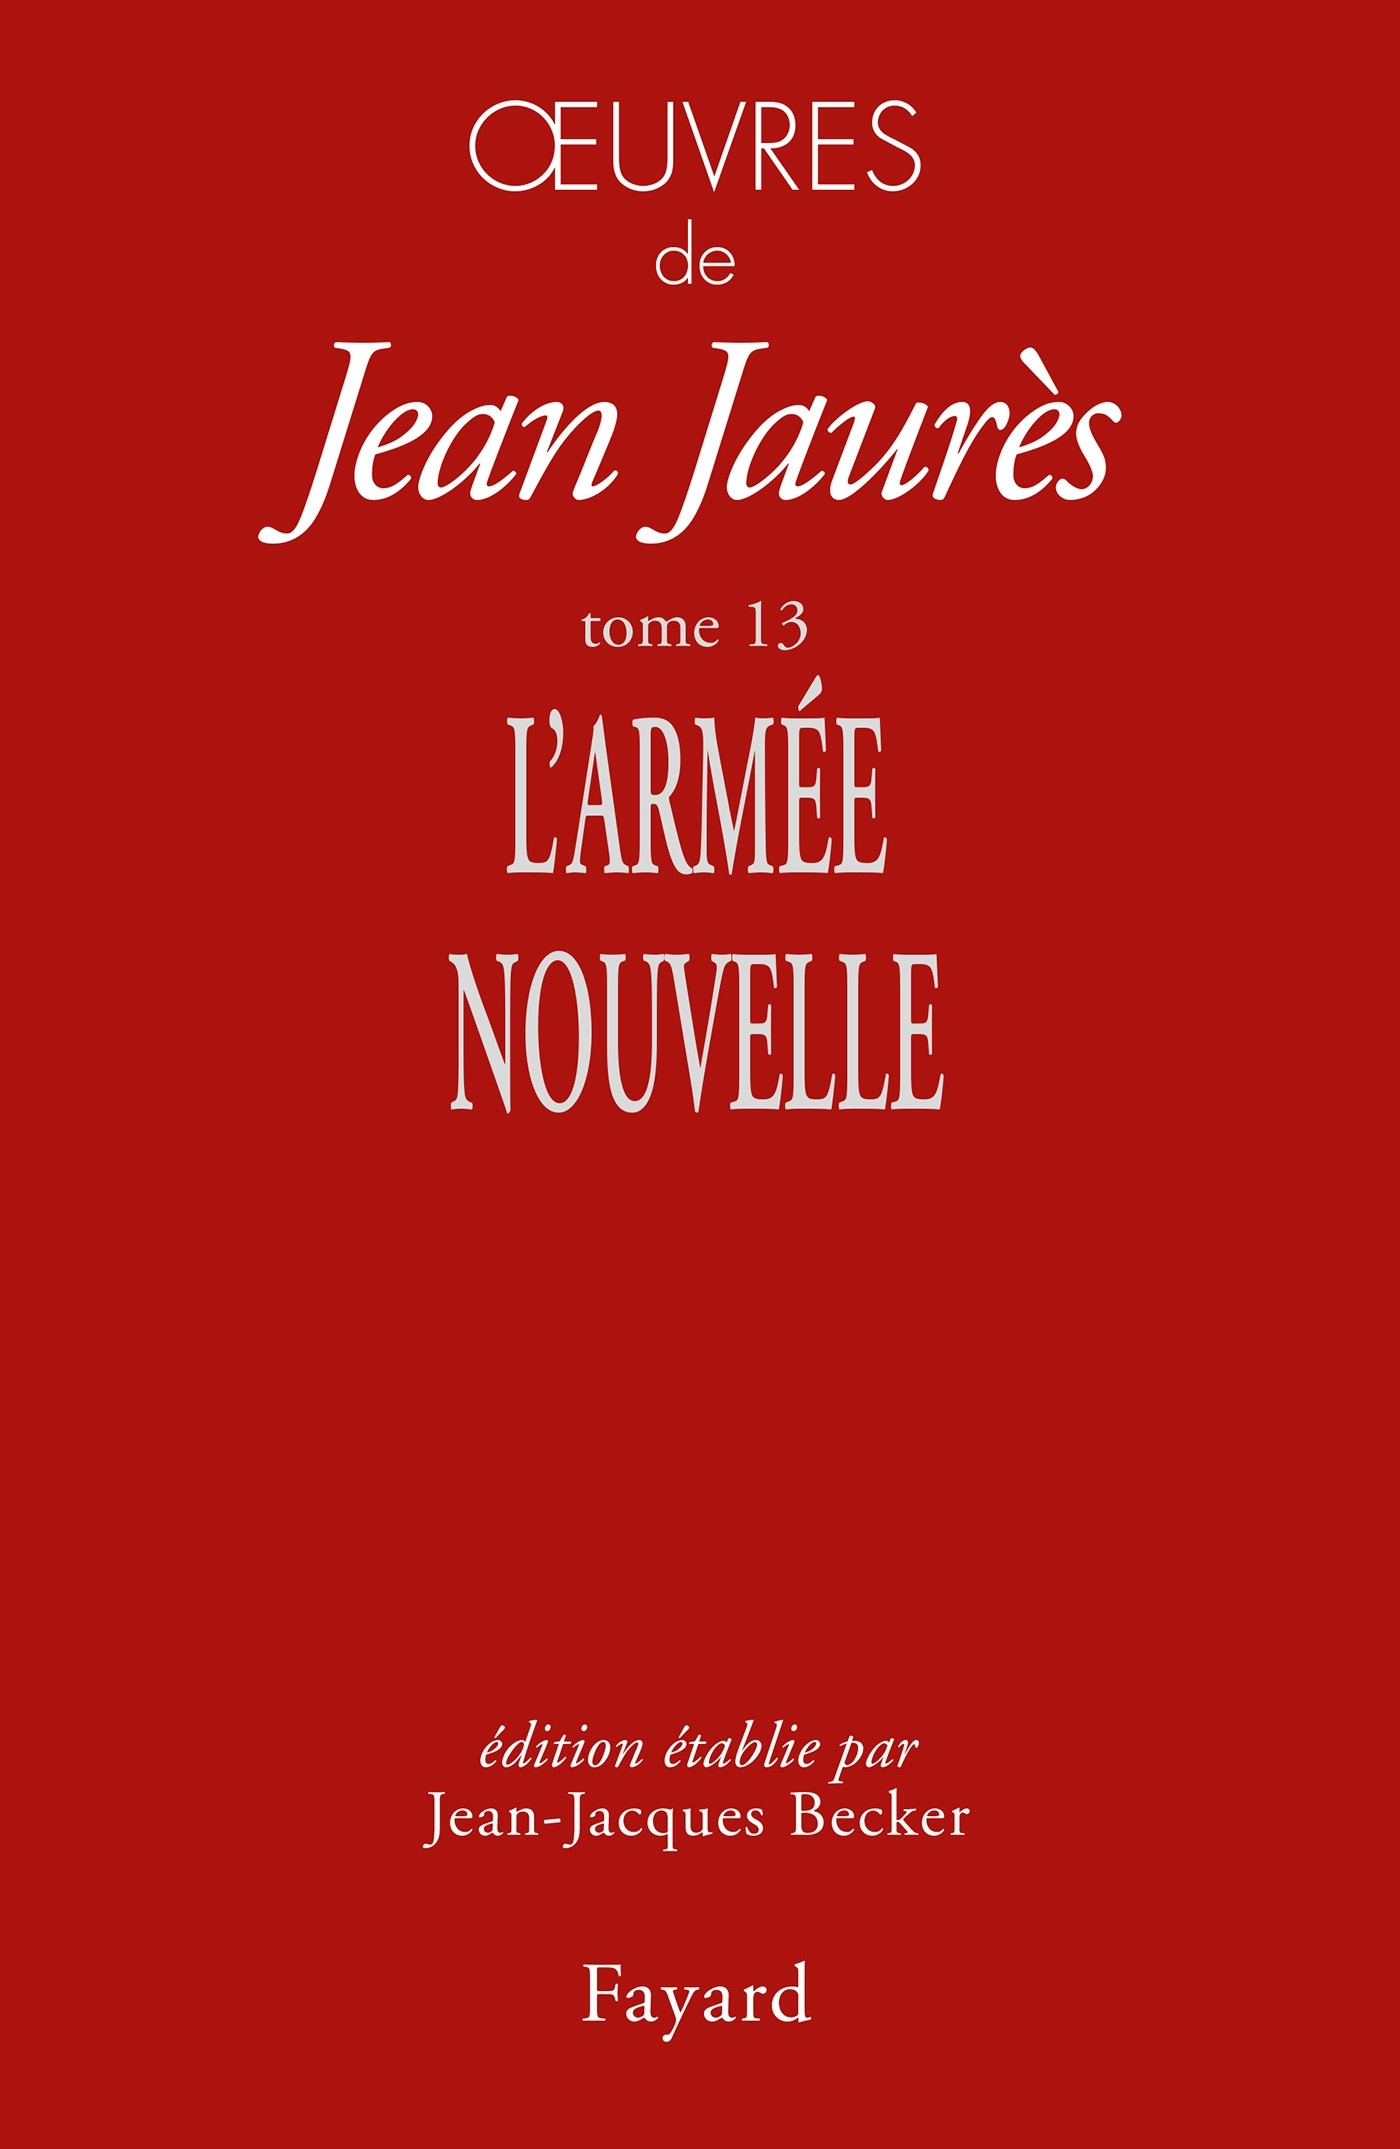 OEUVRES TOME 13 L'ARMEE NOUVELLE